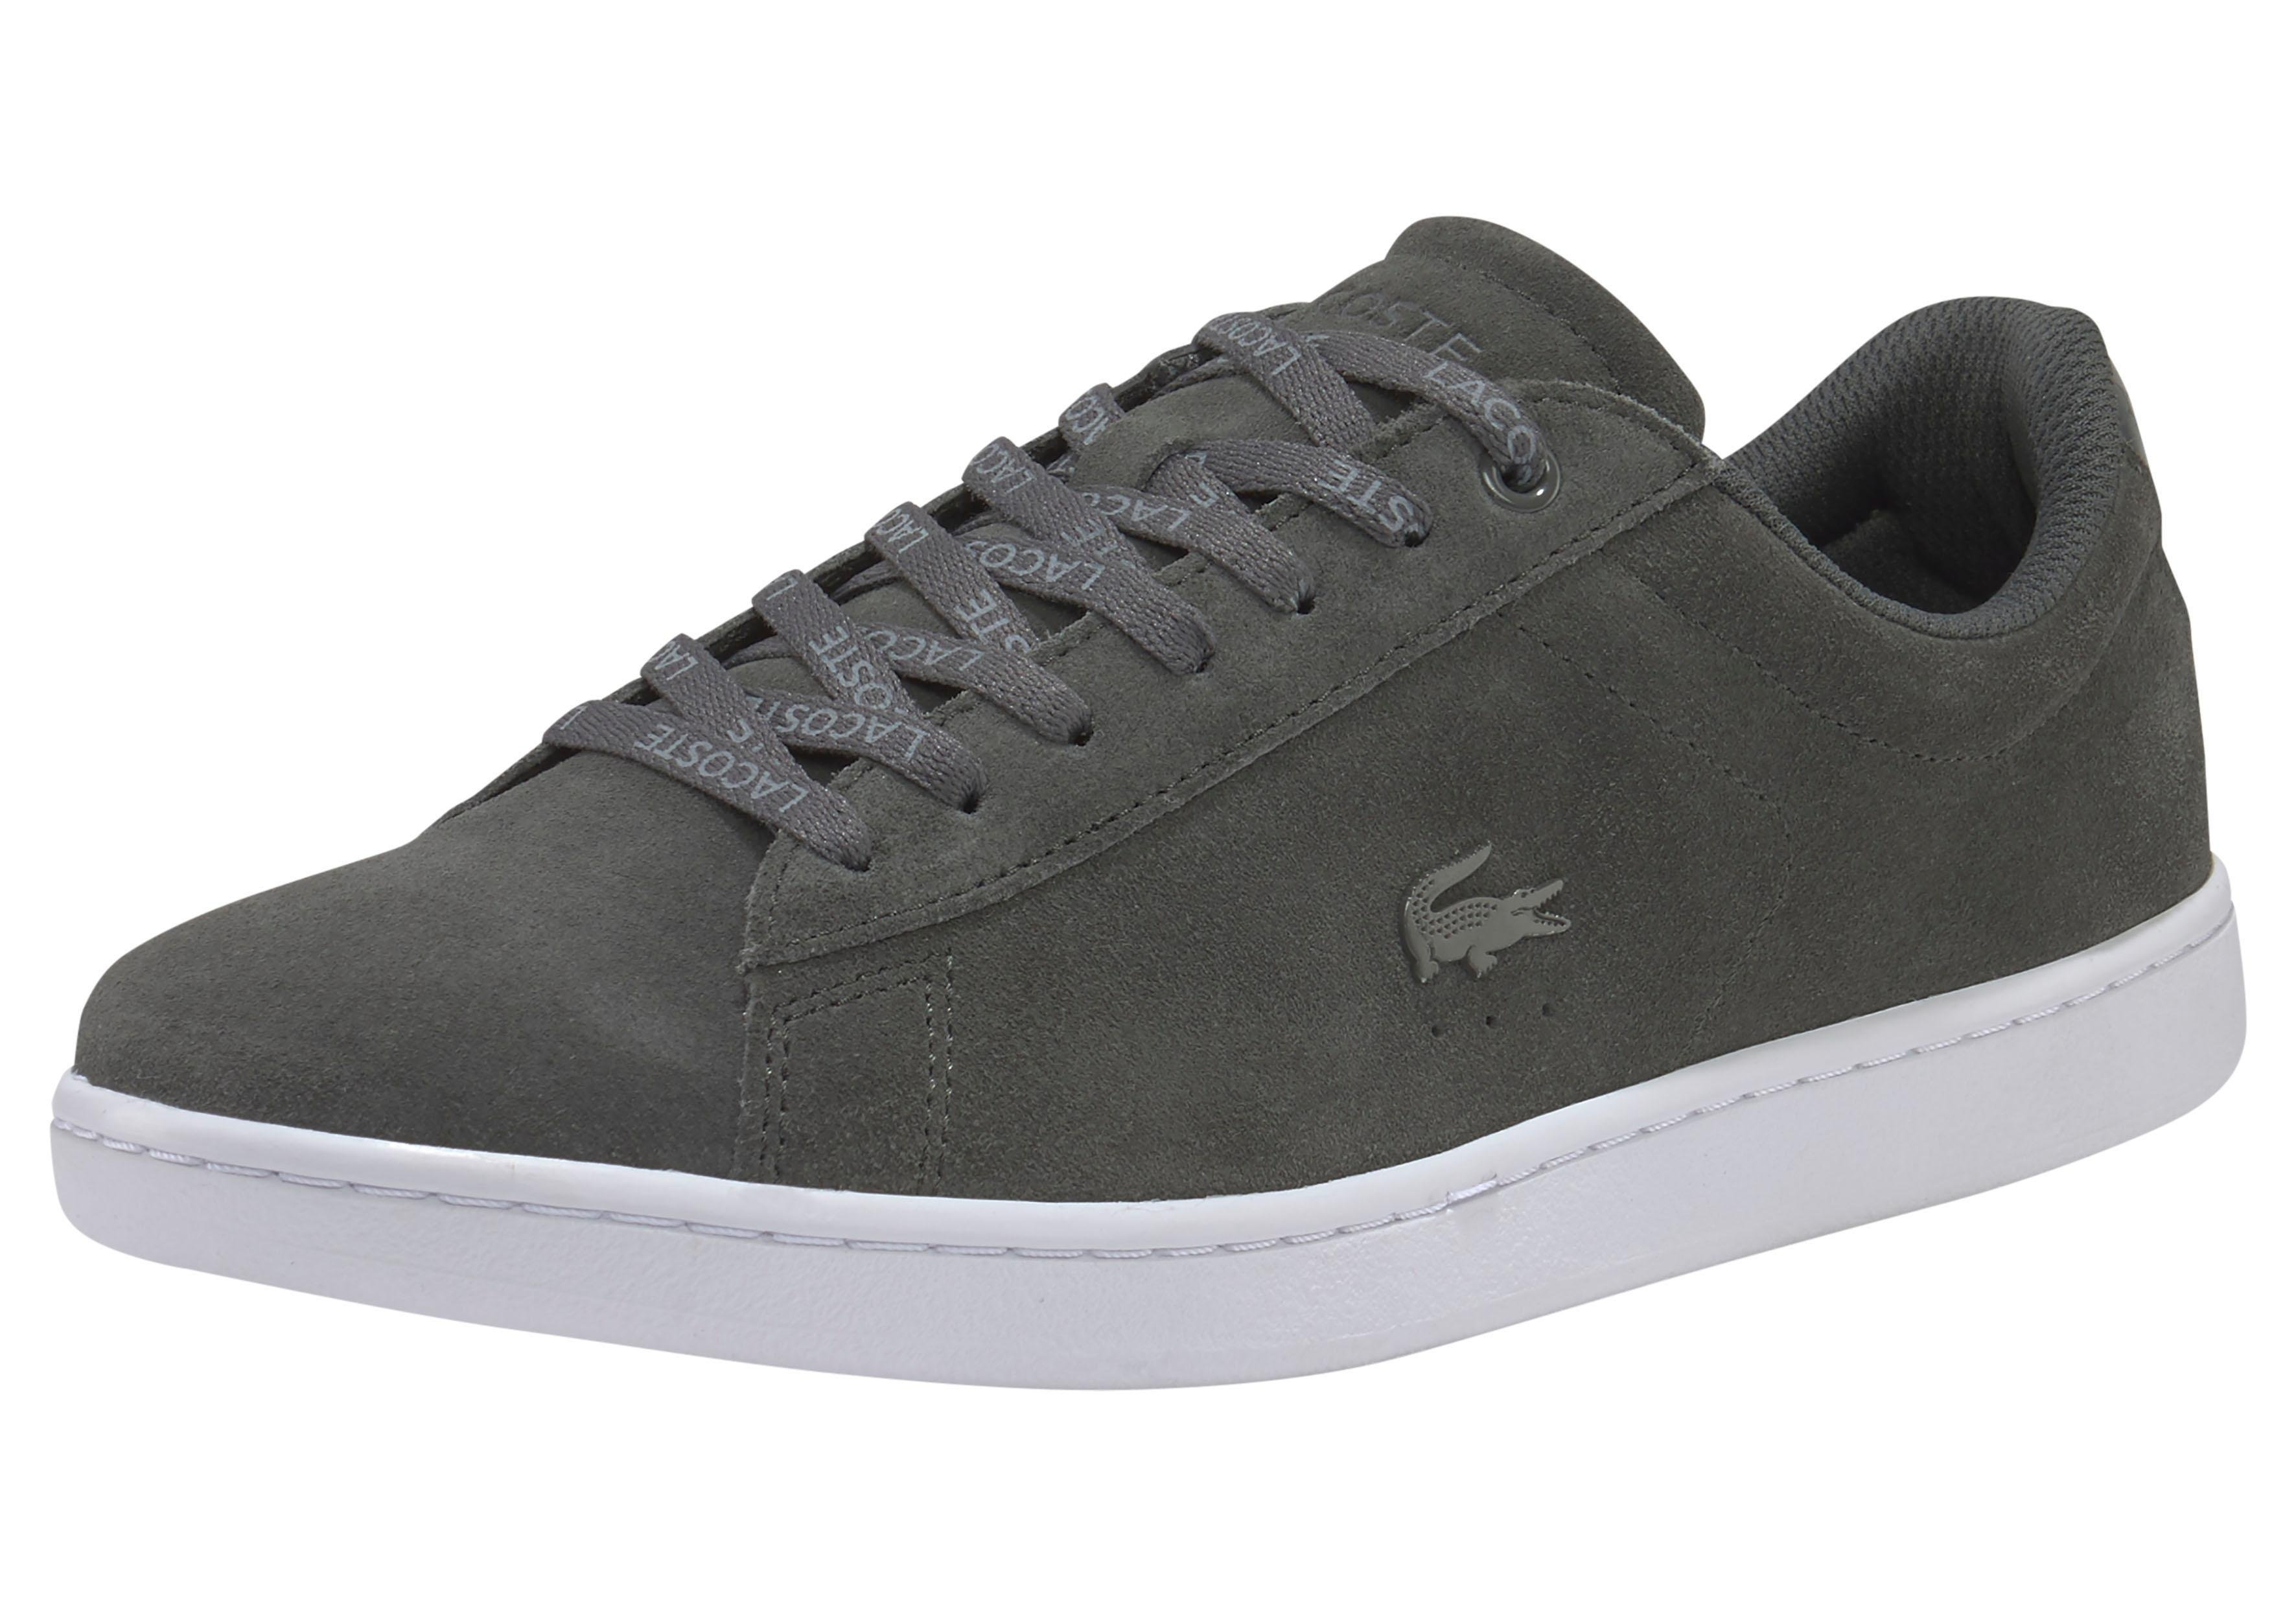 8bb42f95447 Lacoste sneakers »Carnaby Evo 318 2 QSP« online shop | OTTO